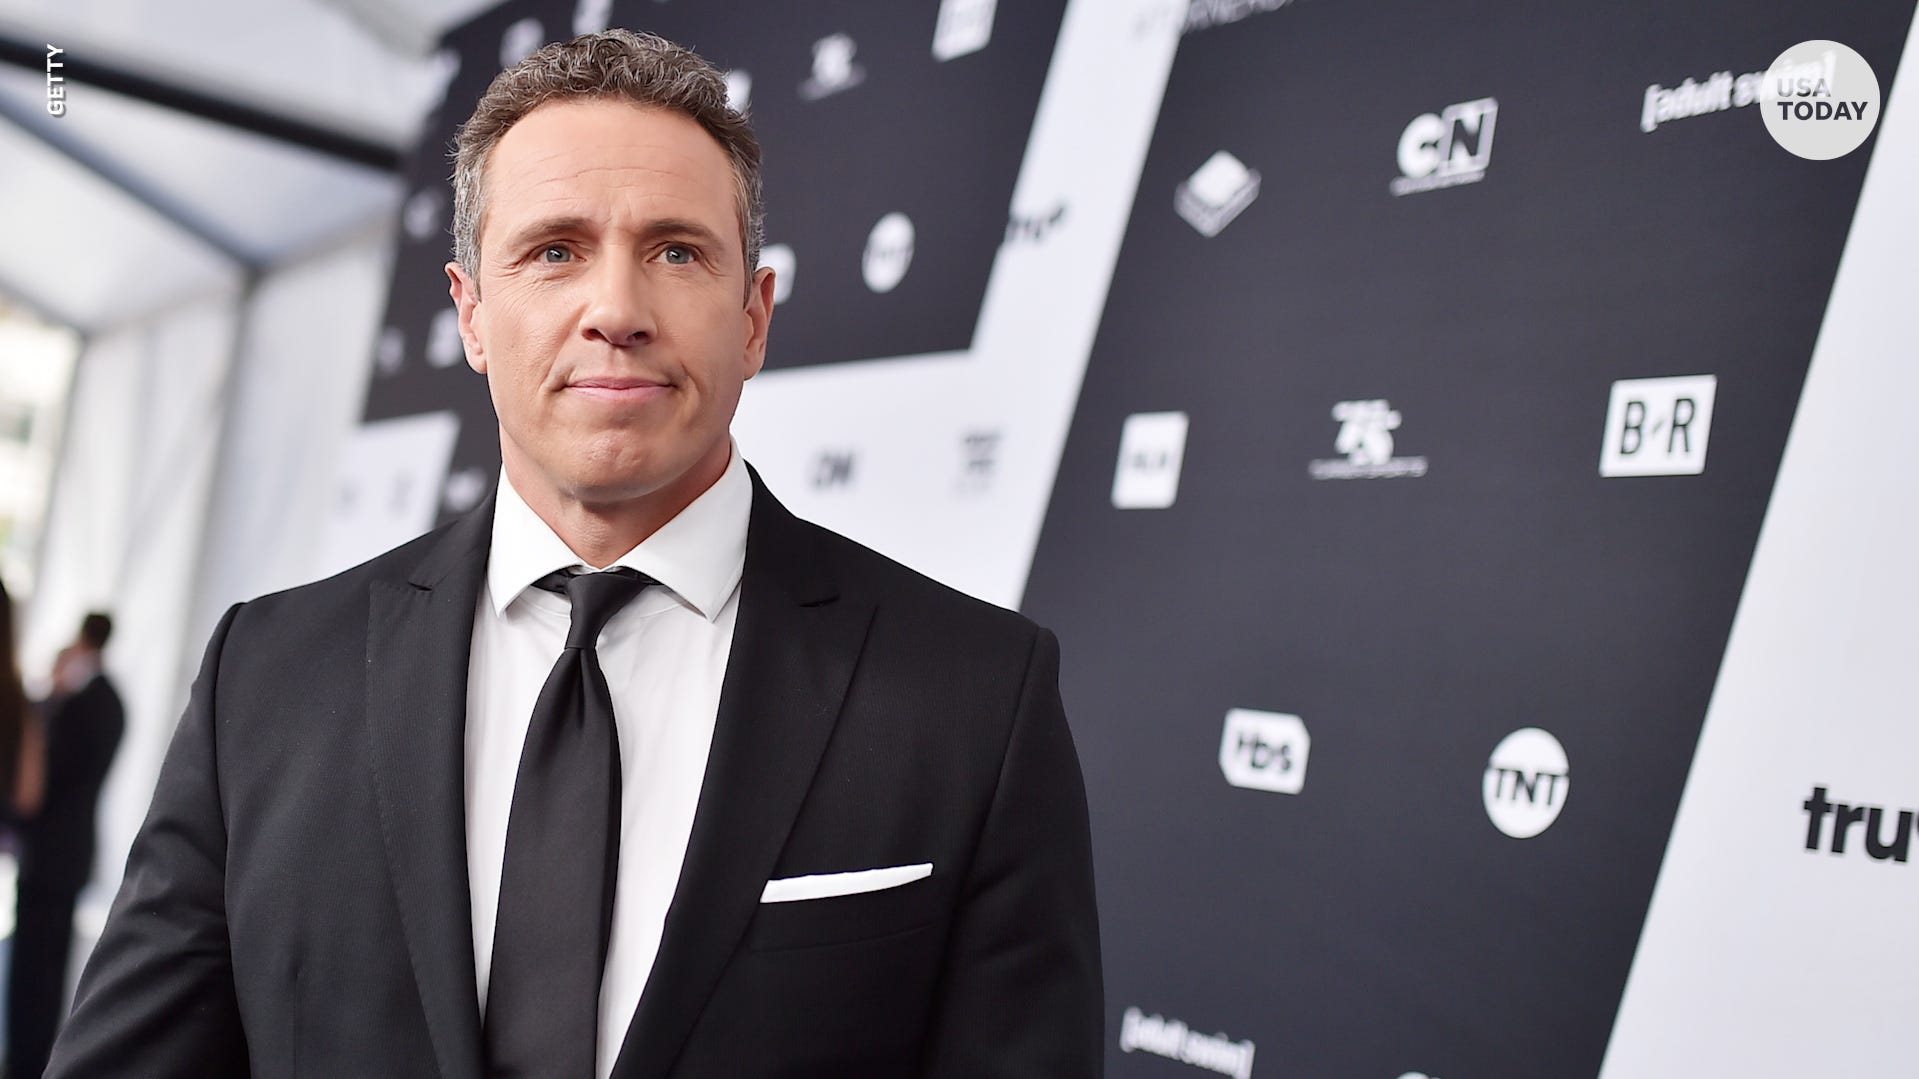 Chris Cuomo Wiki, Biography, Net Worth, Success Story, and Spouse